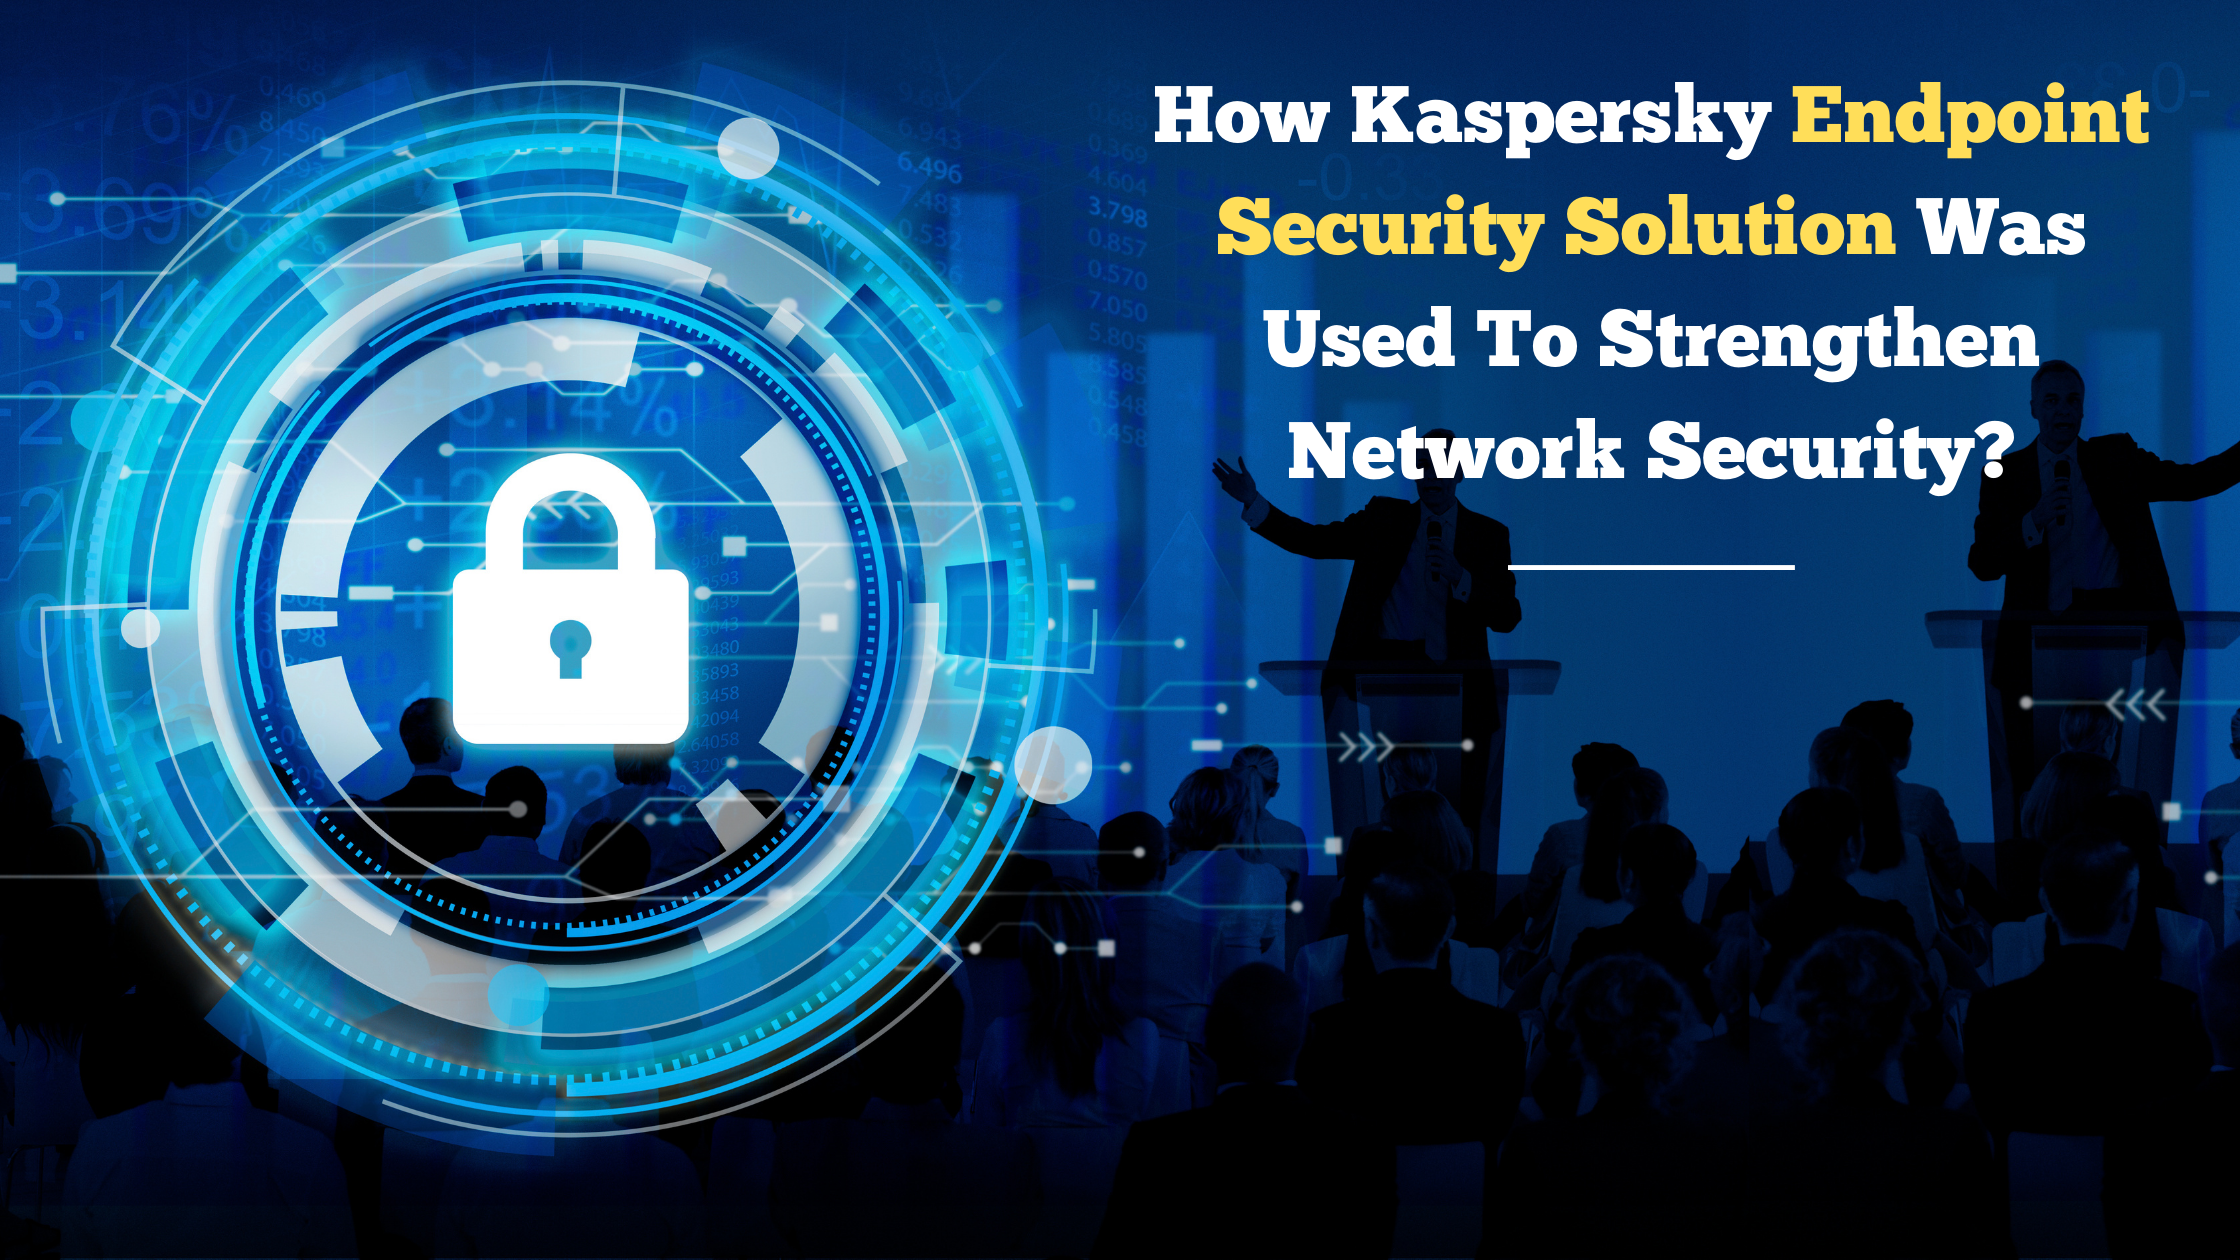 How Kaspersky Endpoint Security Solution Was Used To Strengthen Network Security